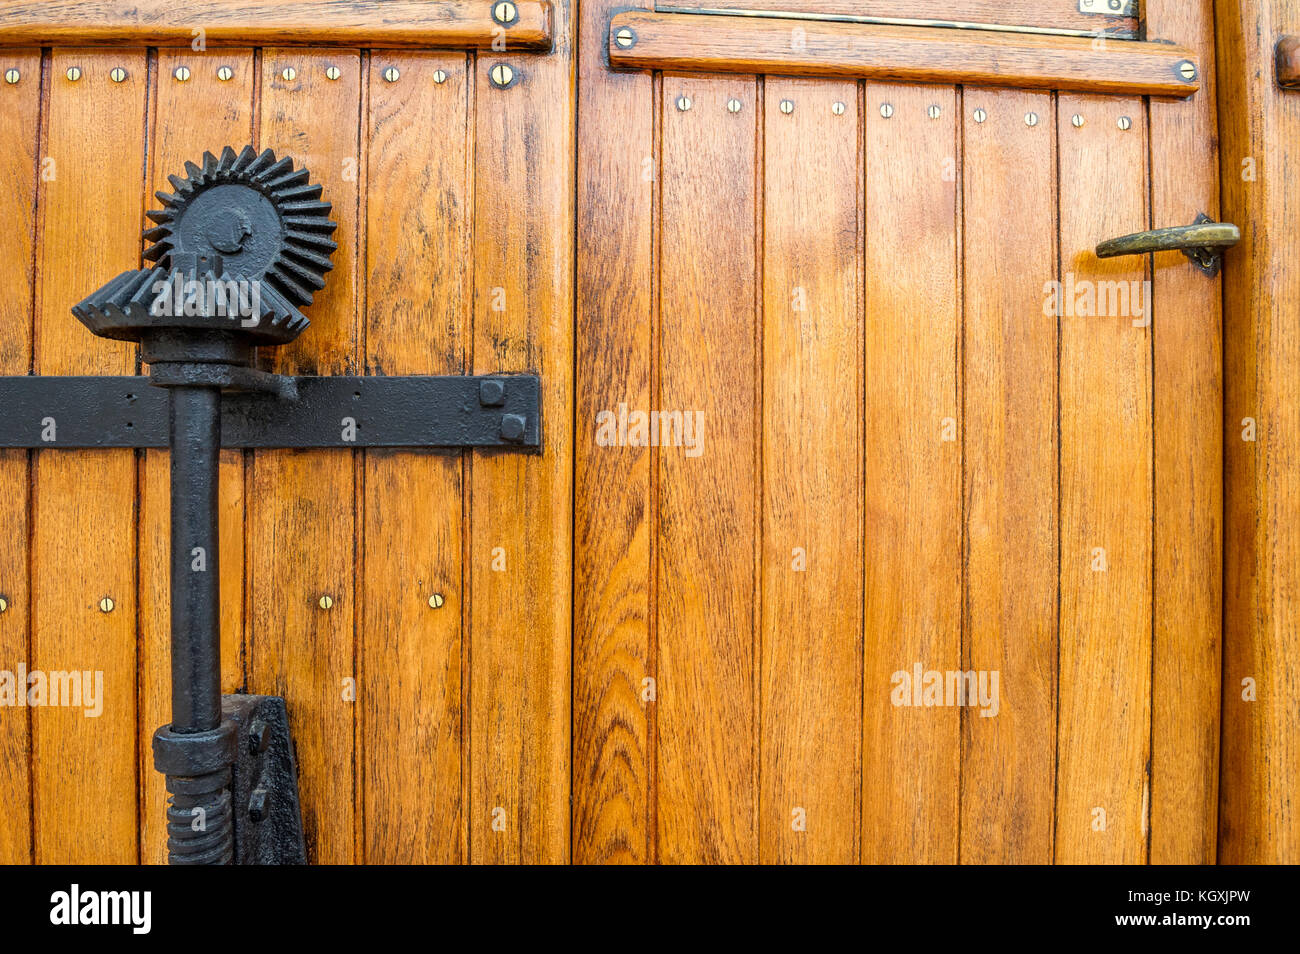 Hand operated brake gearing on a wooden railway coach. - Stock Image